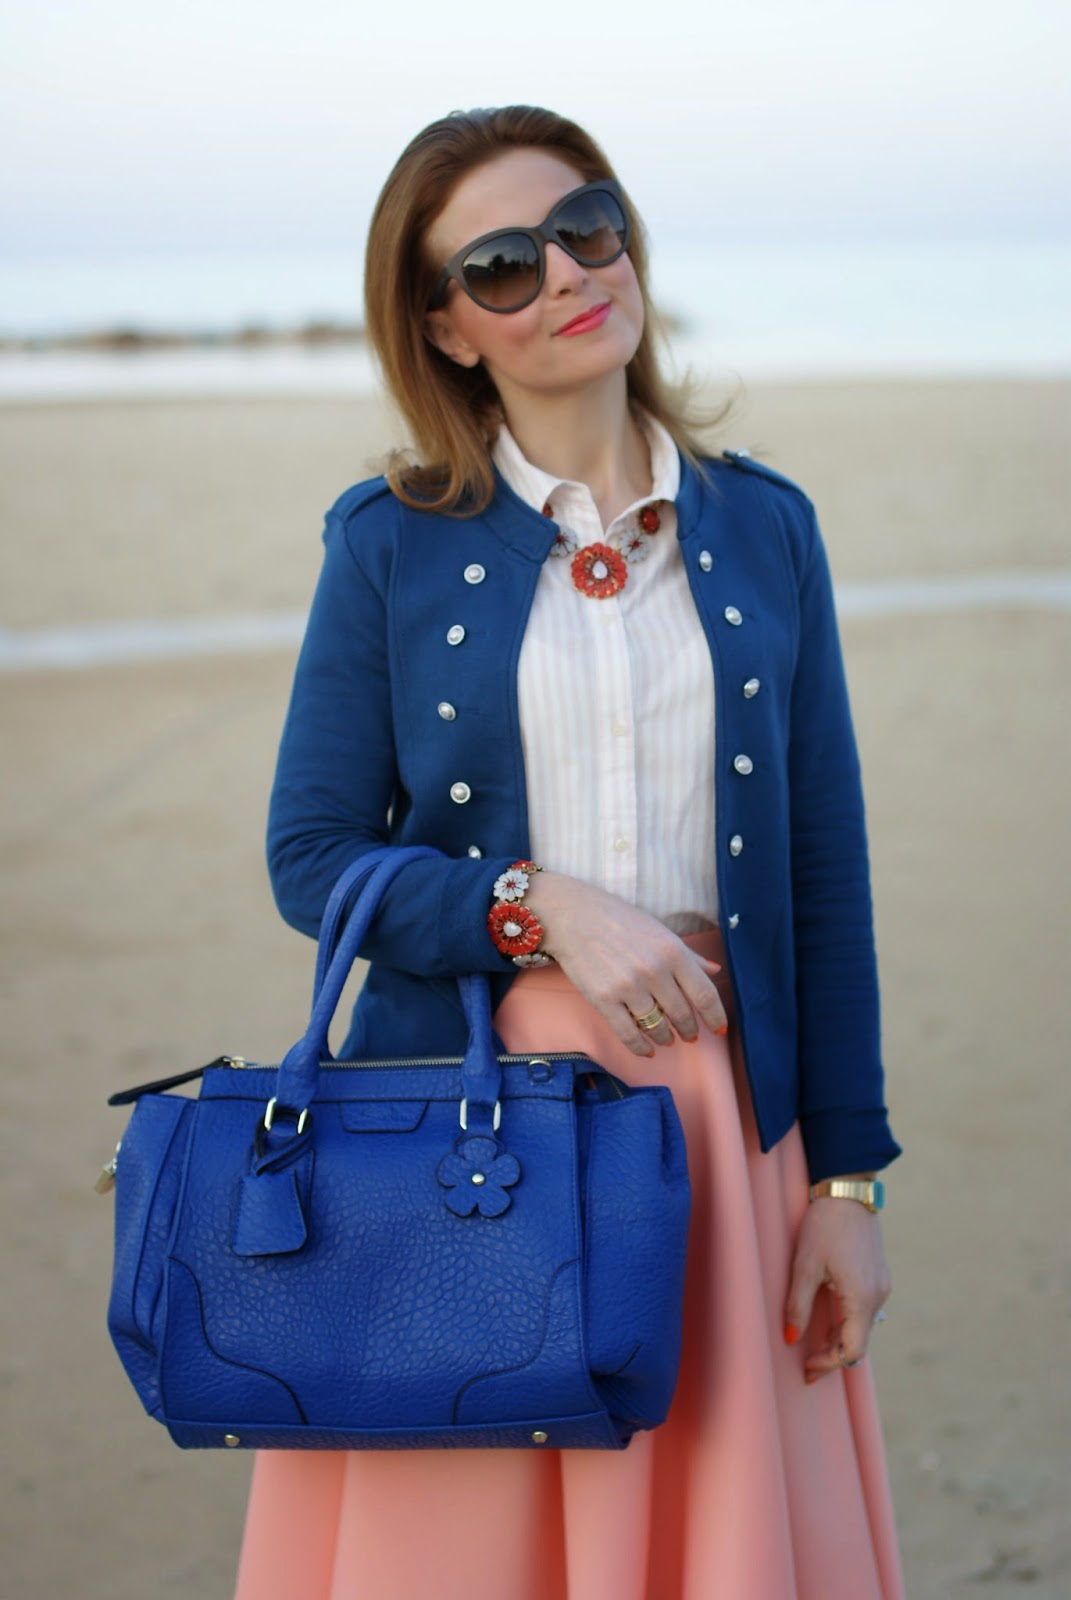 Sodini primavera estate 2014, Sodini IT's bag, orange necklace and bracelet, Fashion and Cookies, fashion blogger